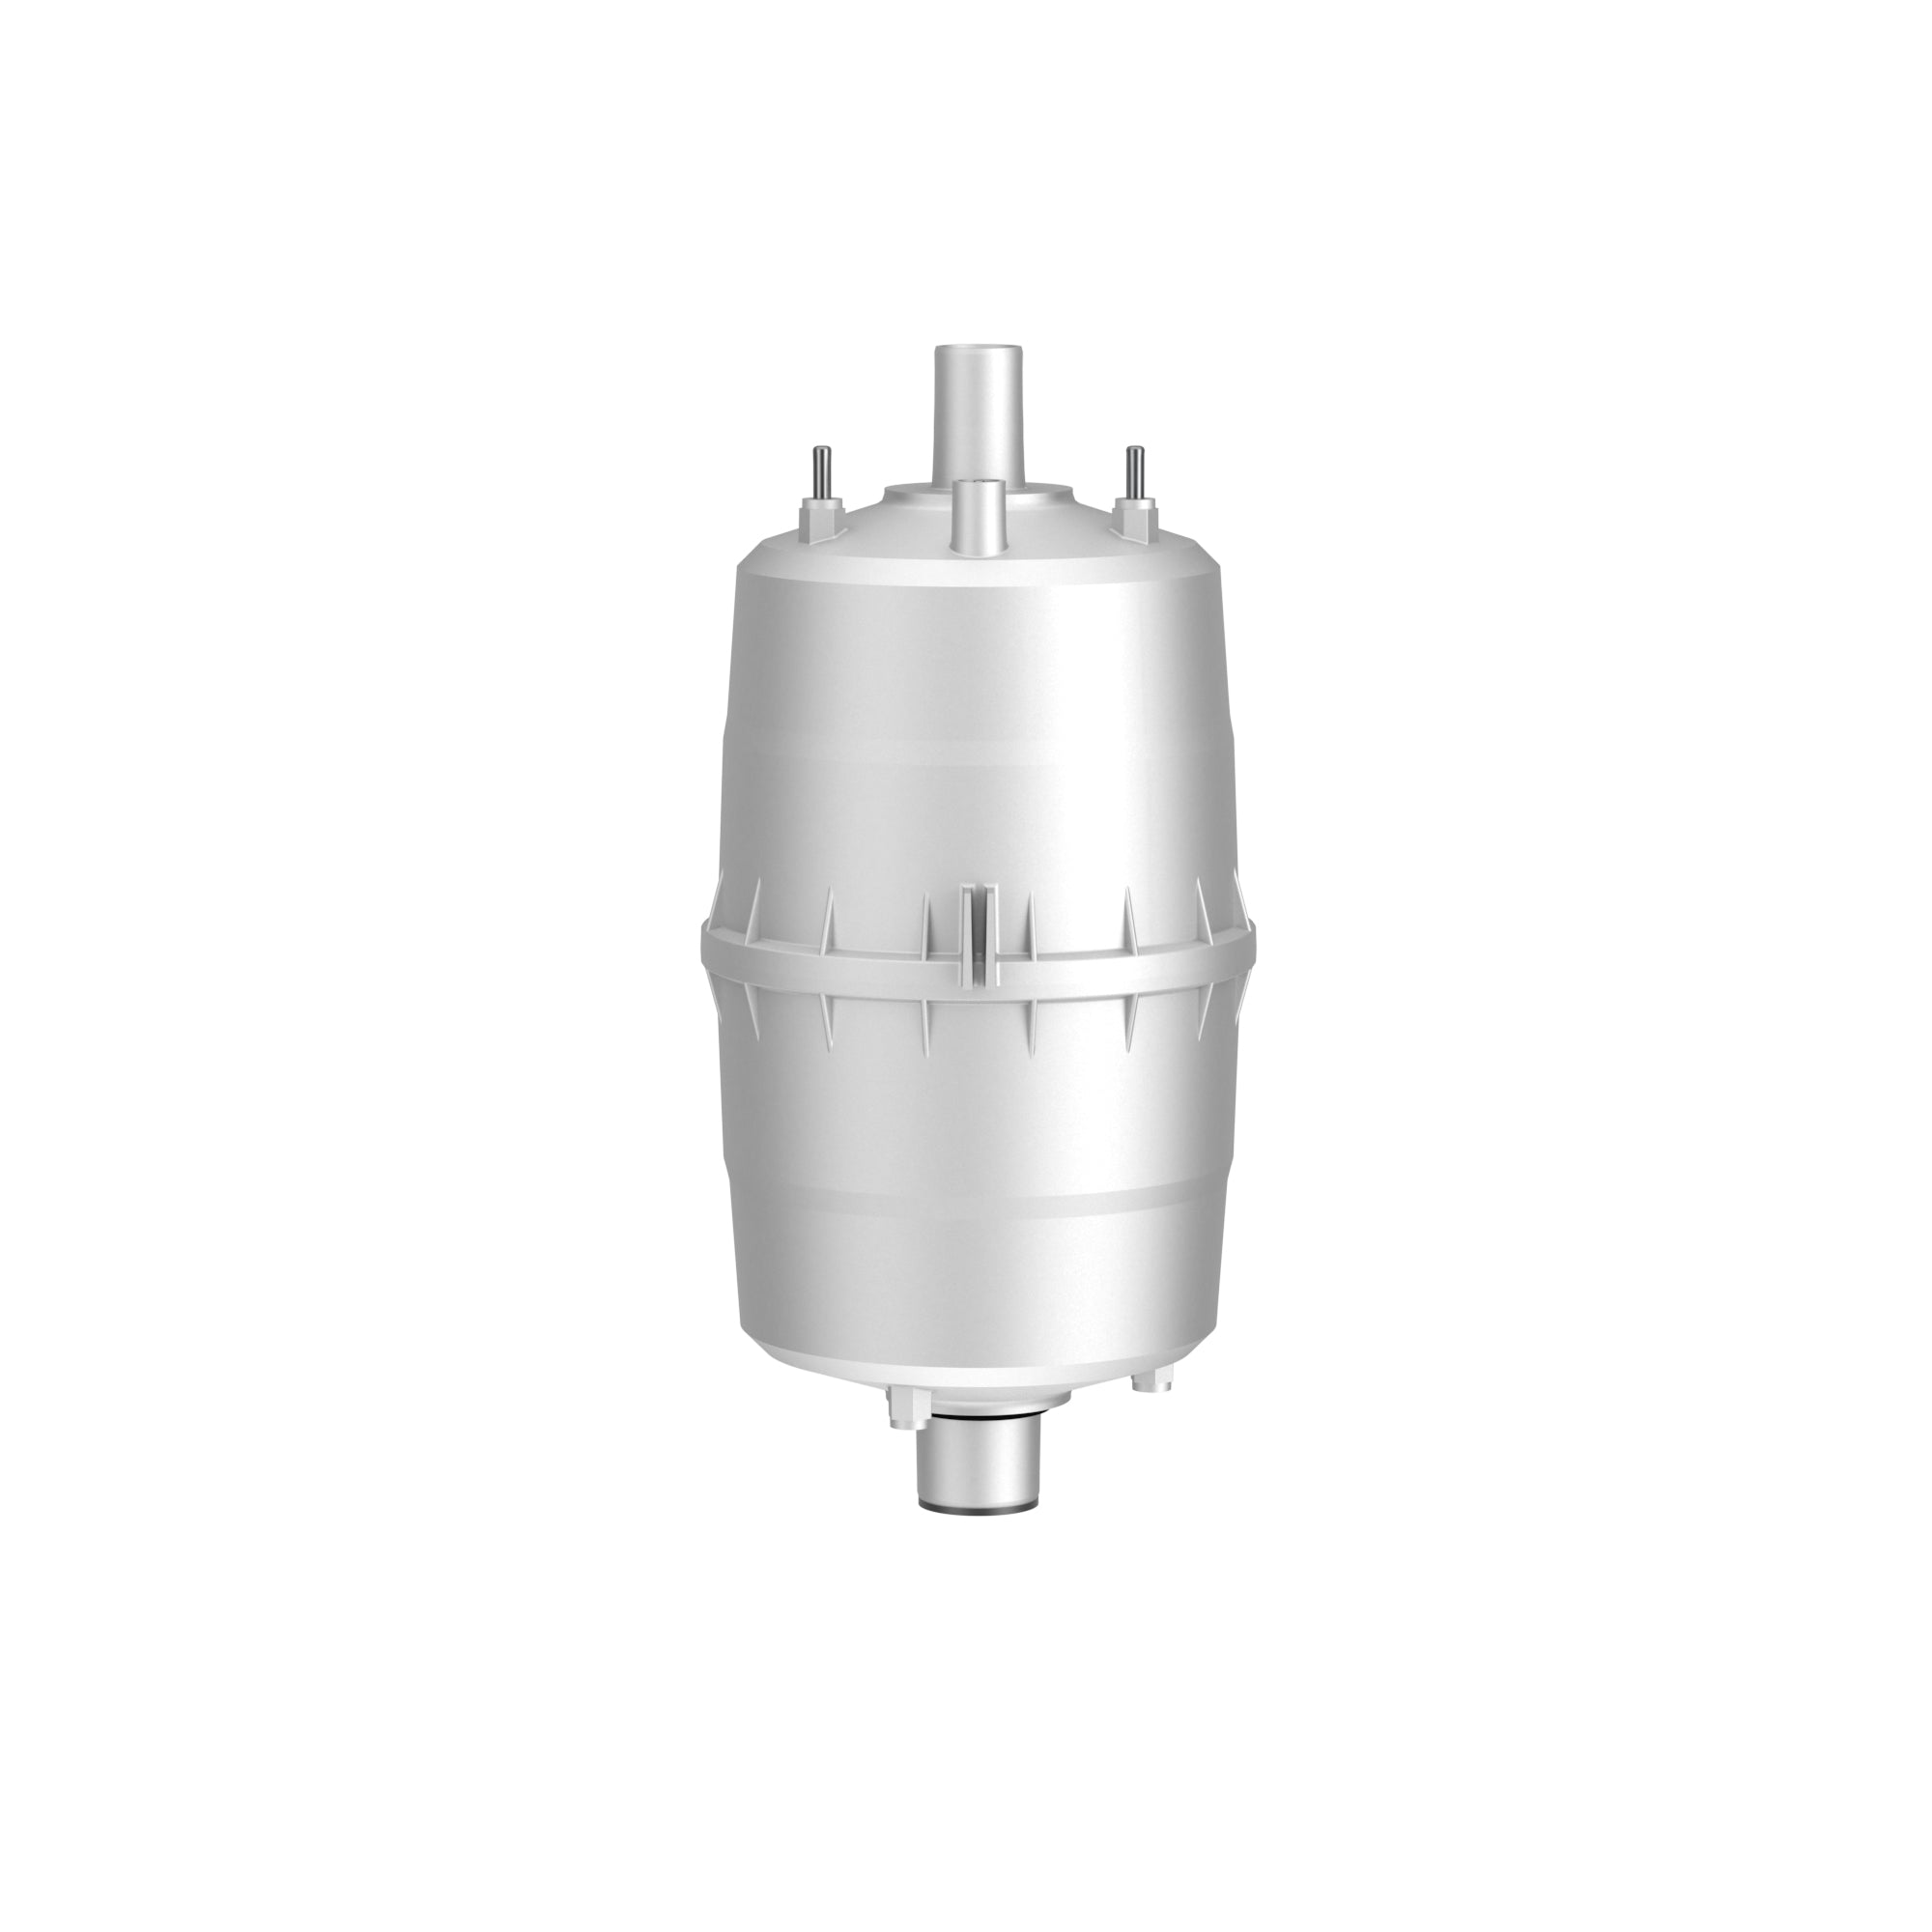 model-80lc-steam-humidifier-canister-low-conductivity